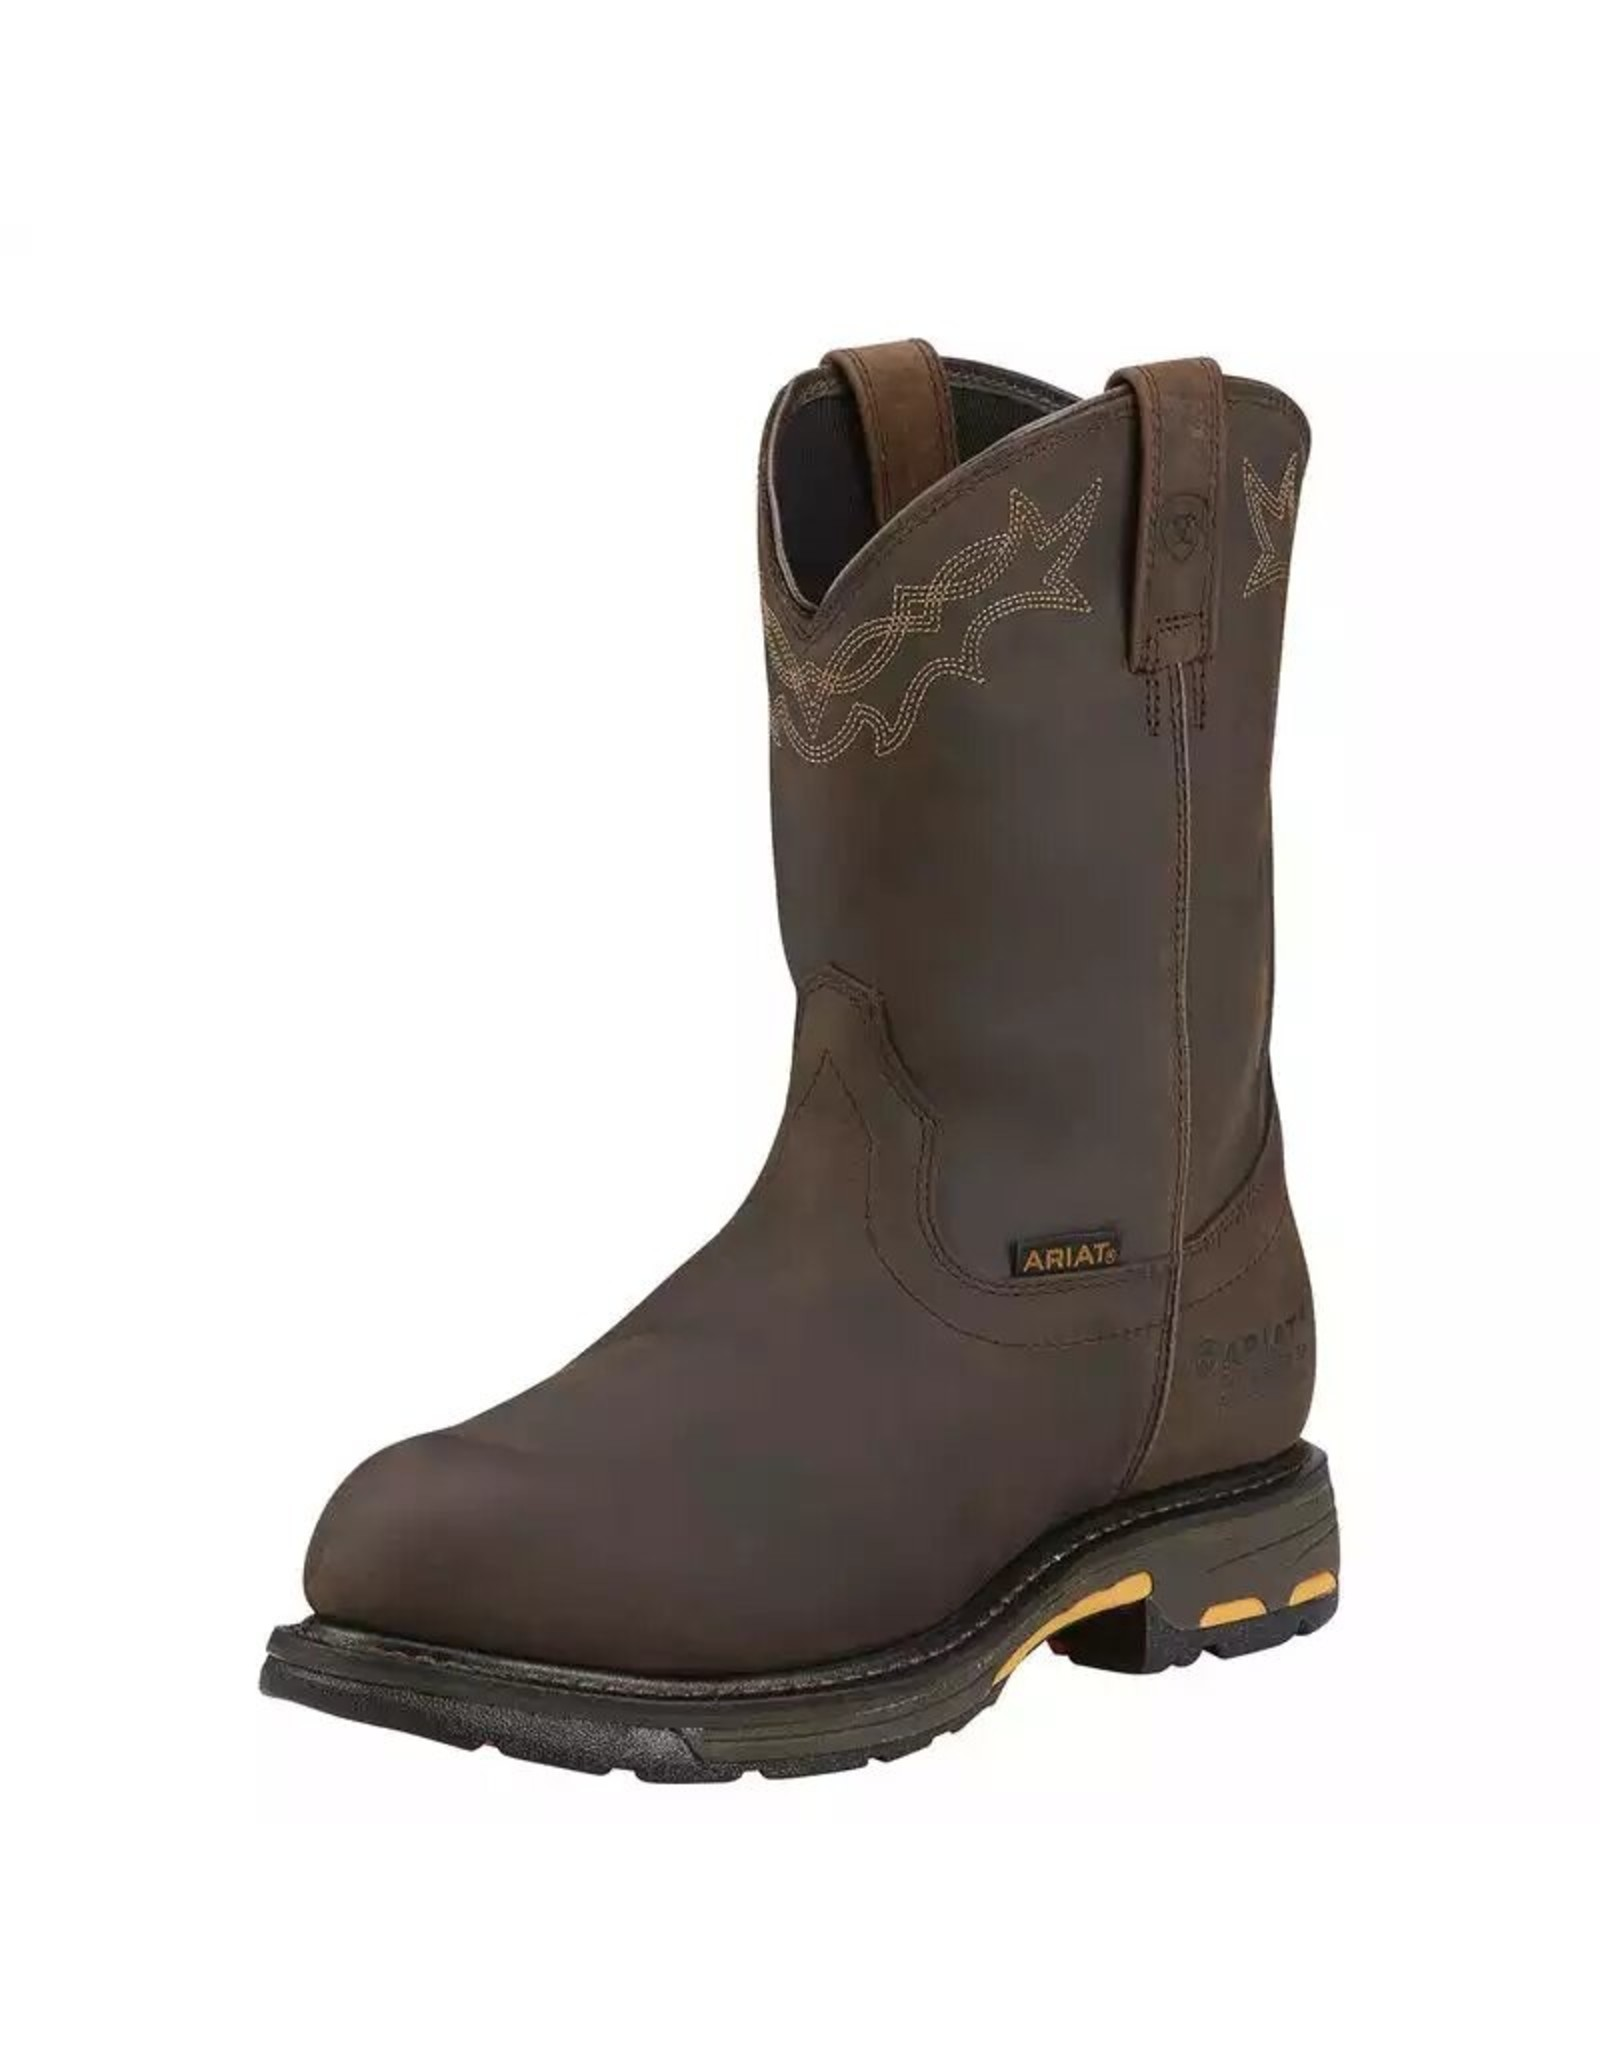 Boots-Men ARIAT 10001200 Workhog H2O Comp Toe